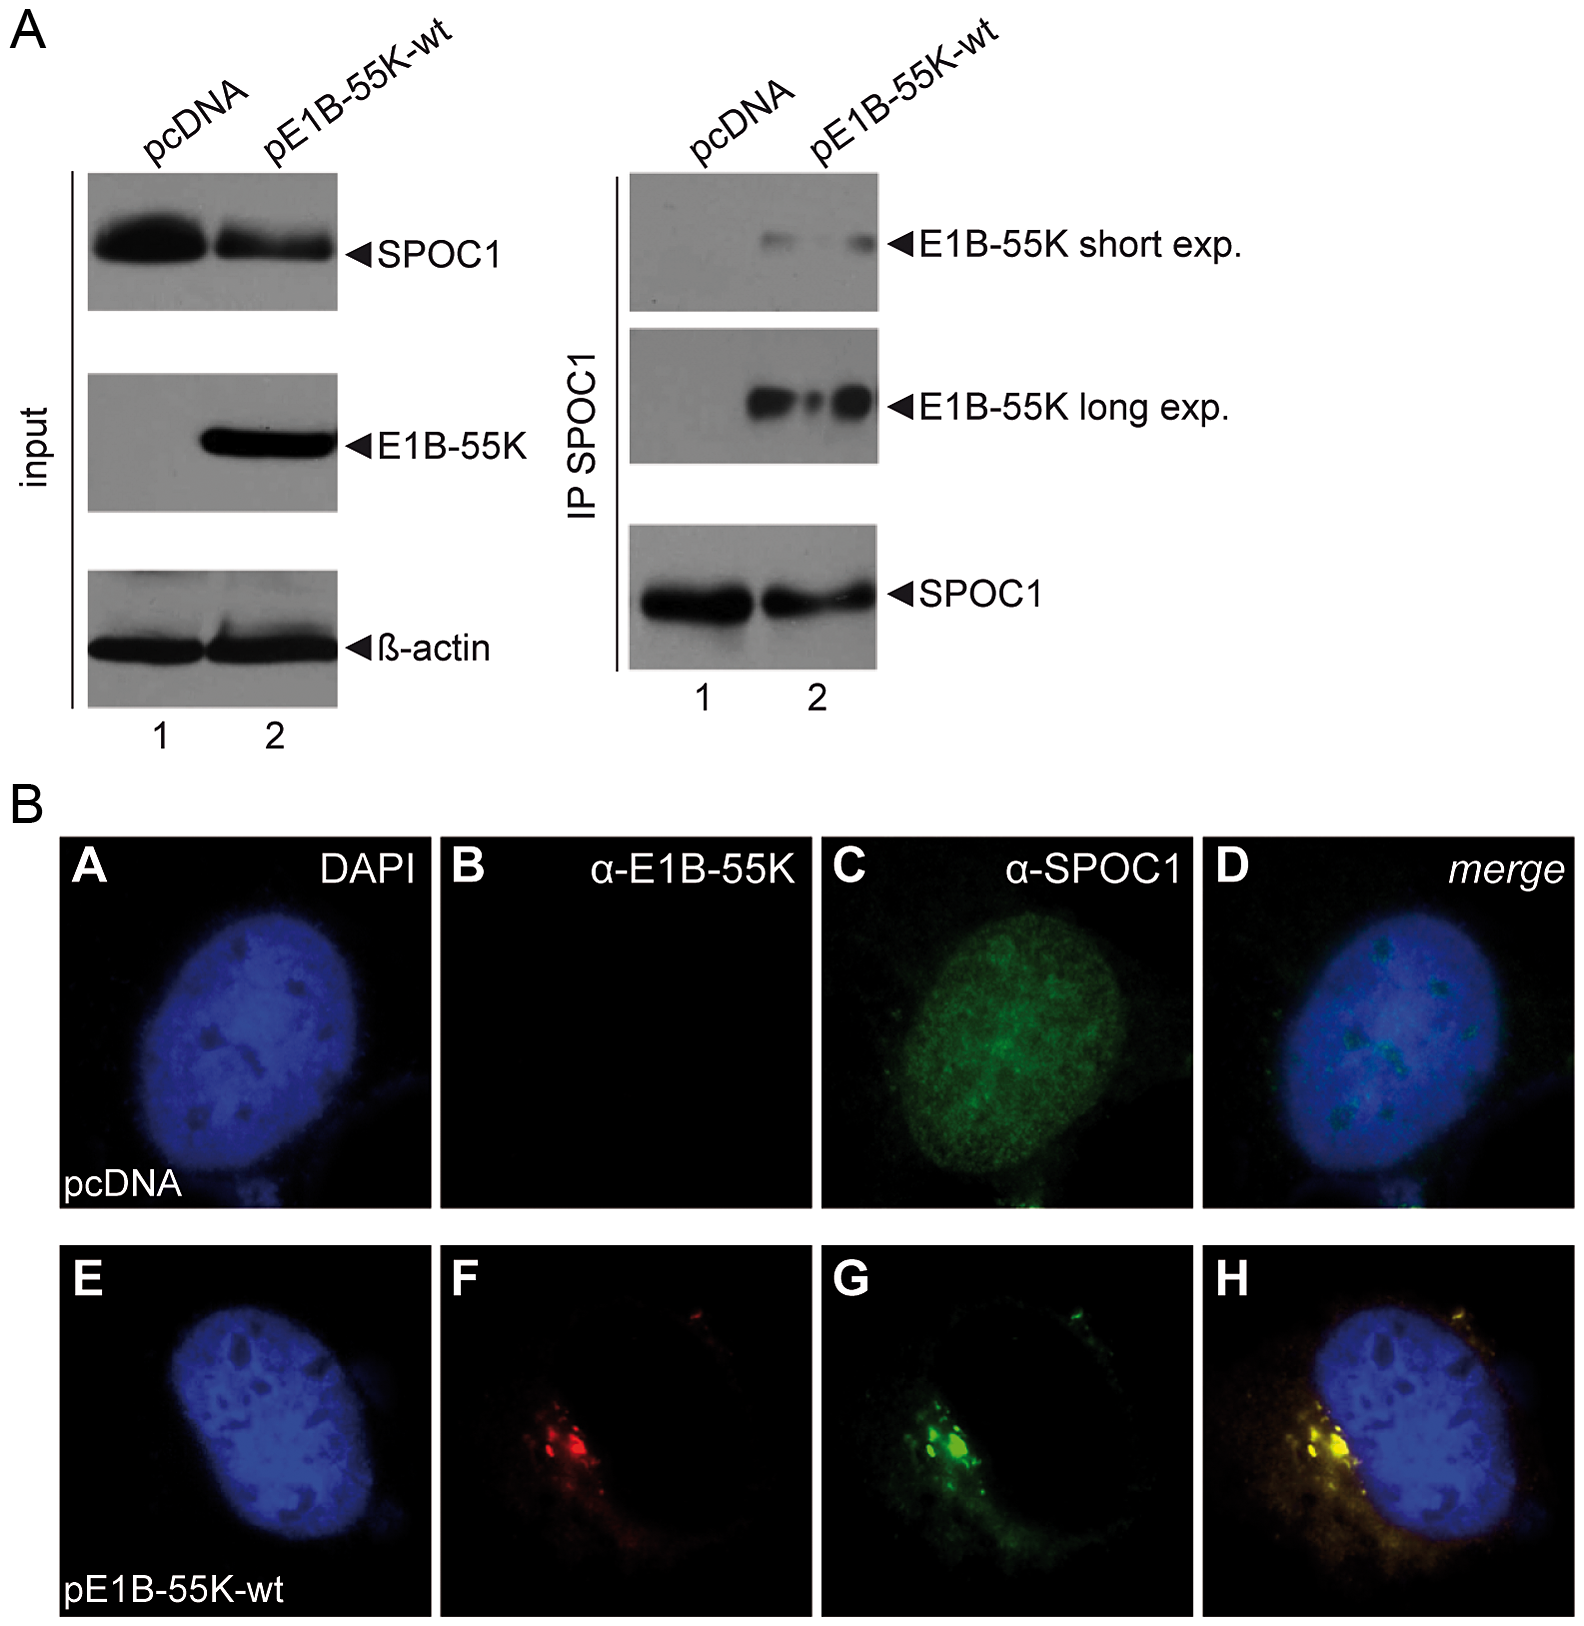 SPOC1 is a novel interaction partner of viral E1B-55K protein.